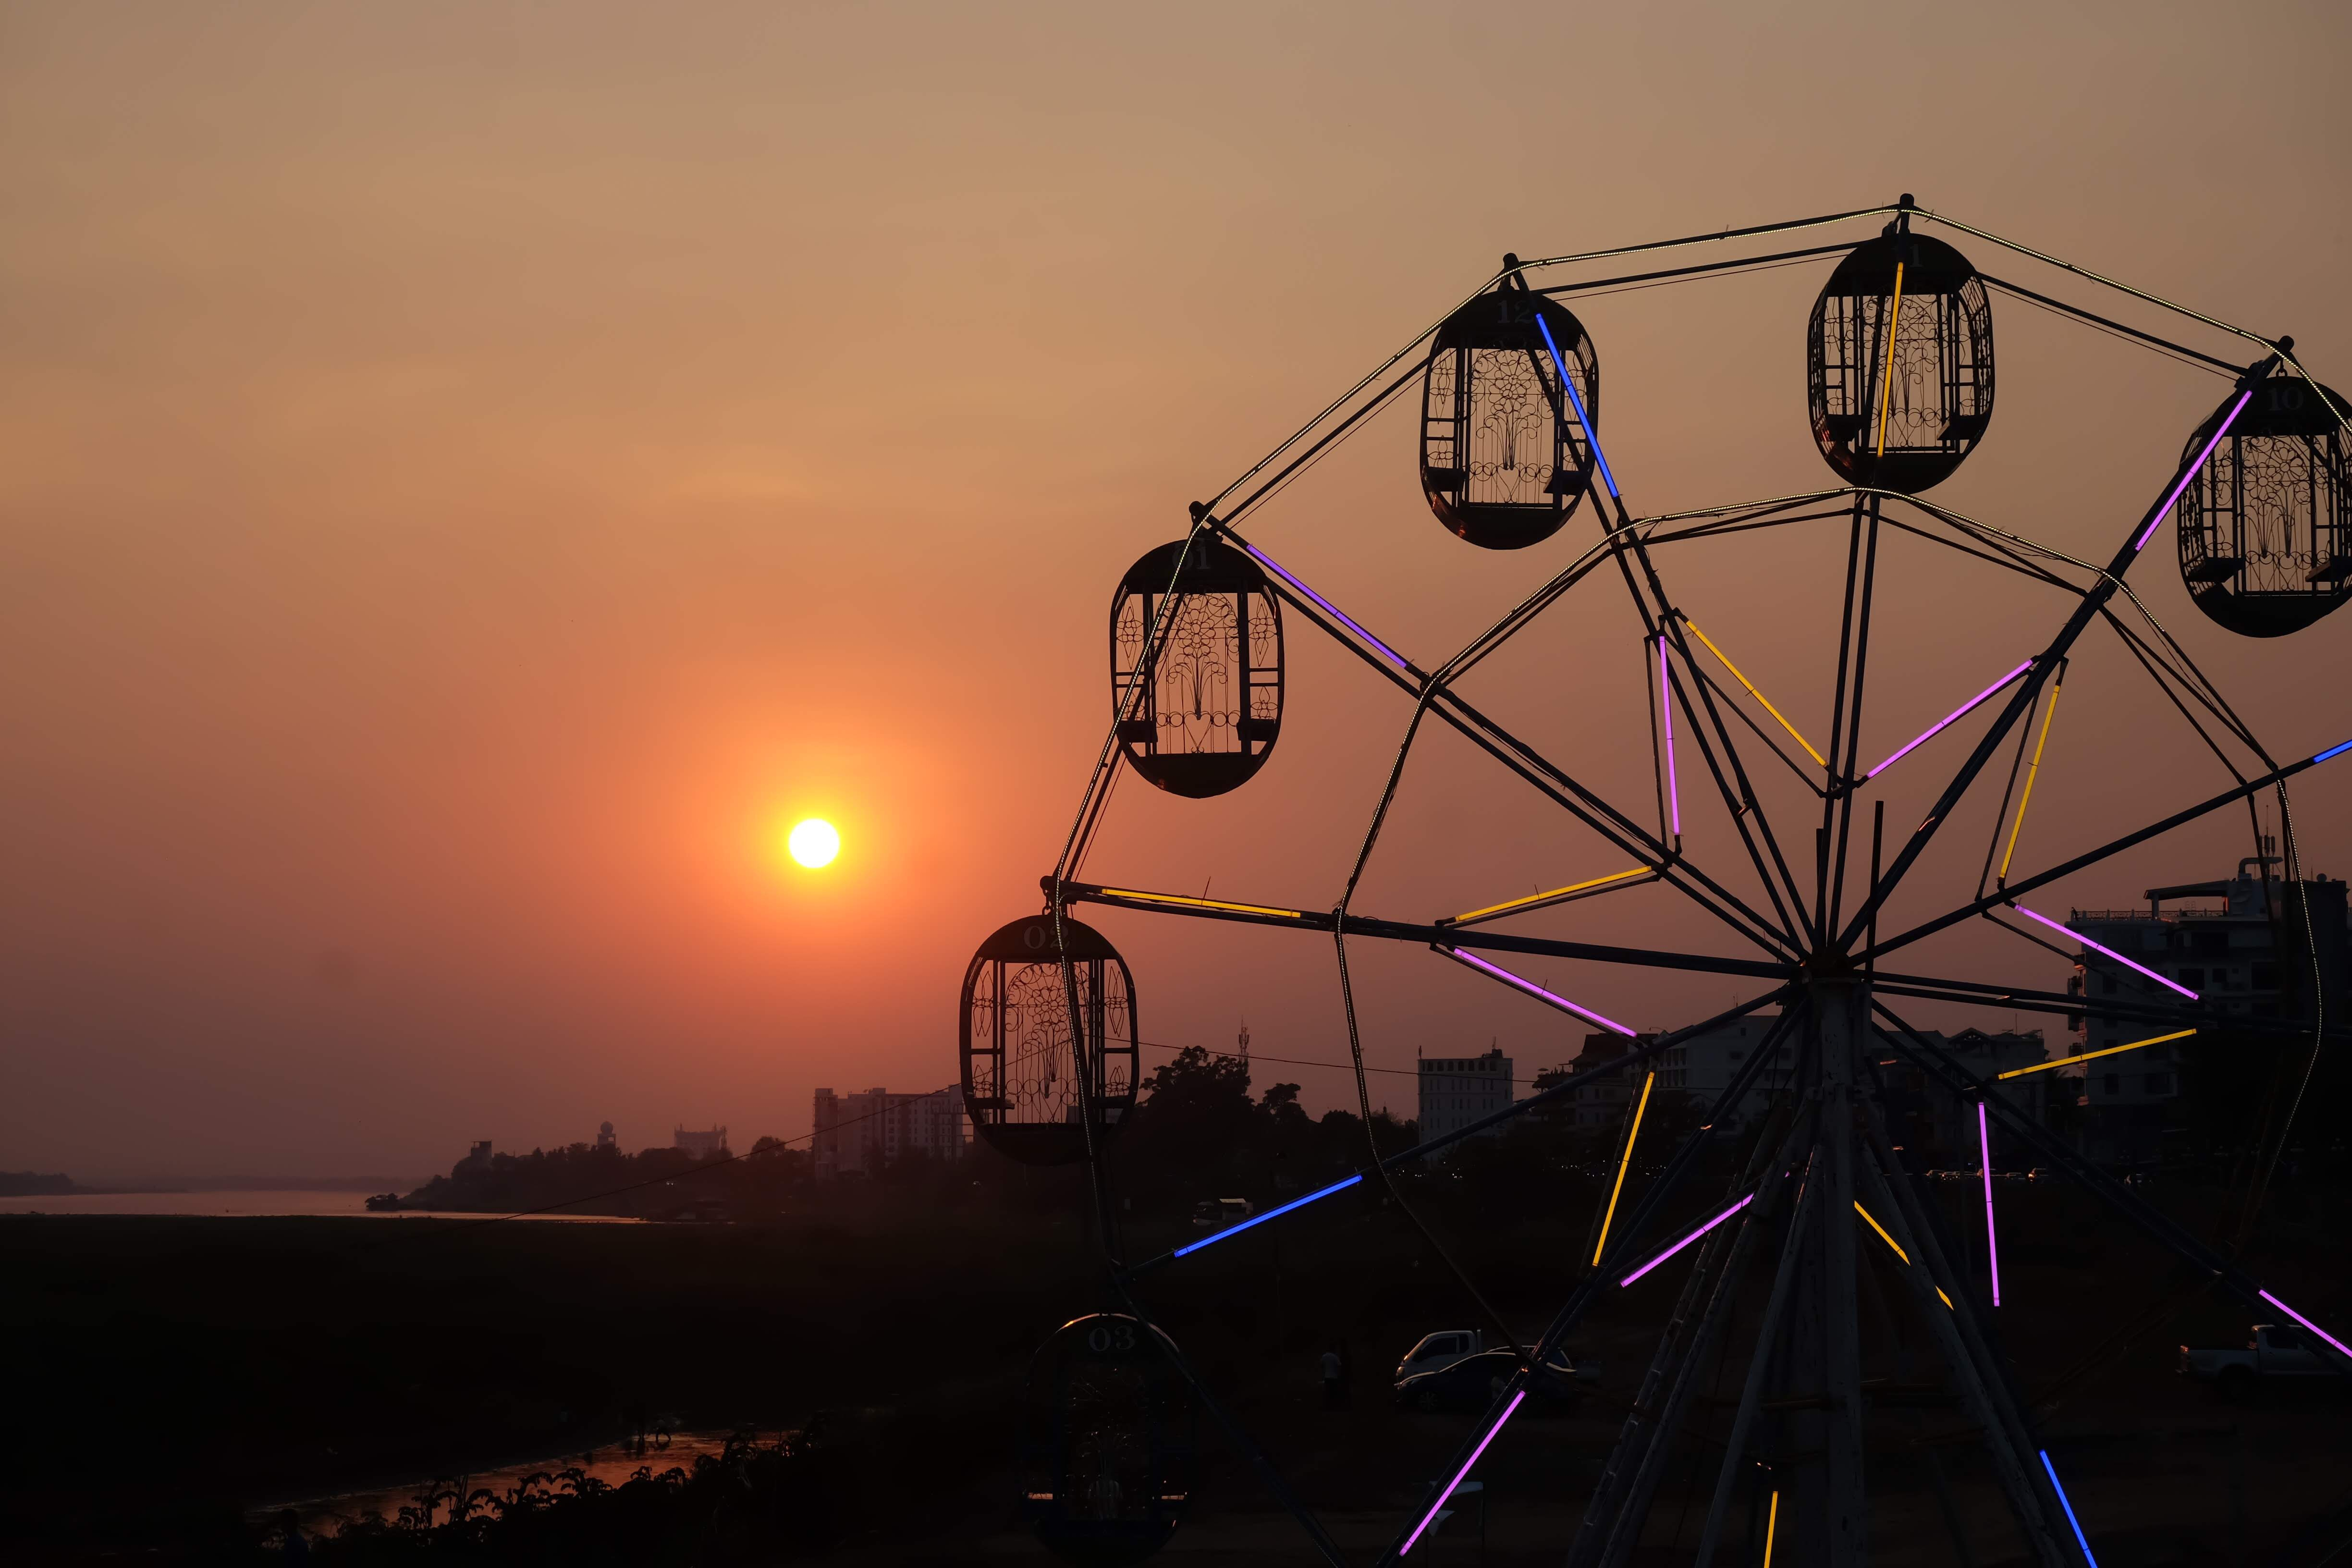 Ferris wheel in Vientiane, Laos